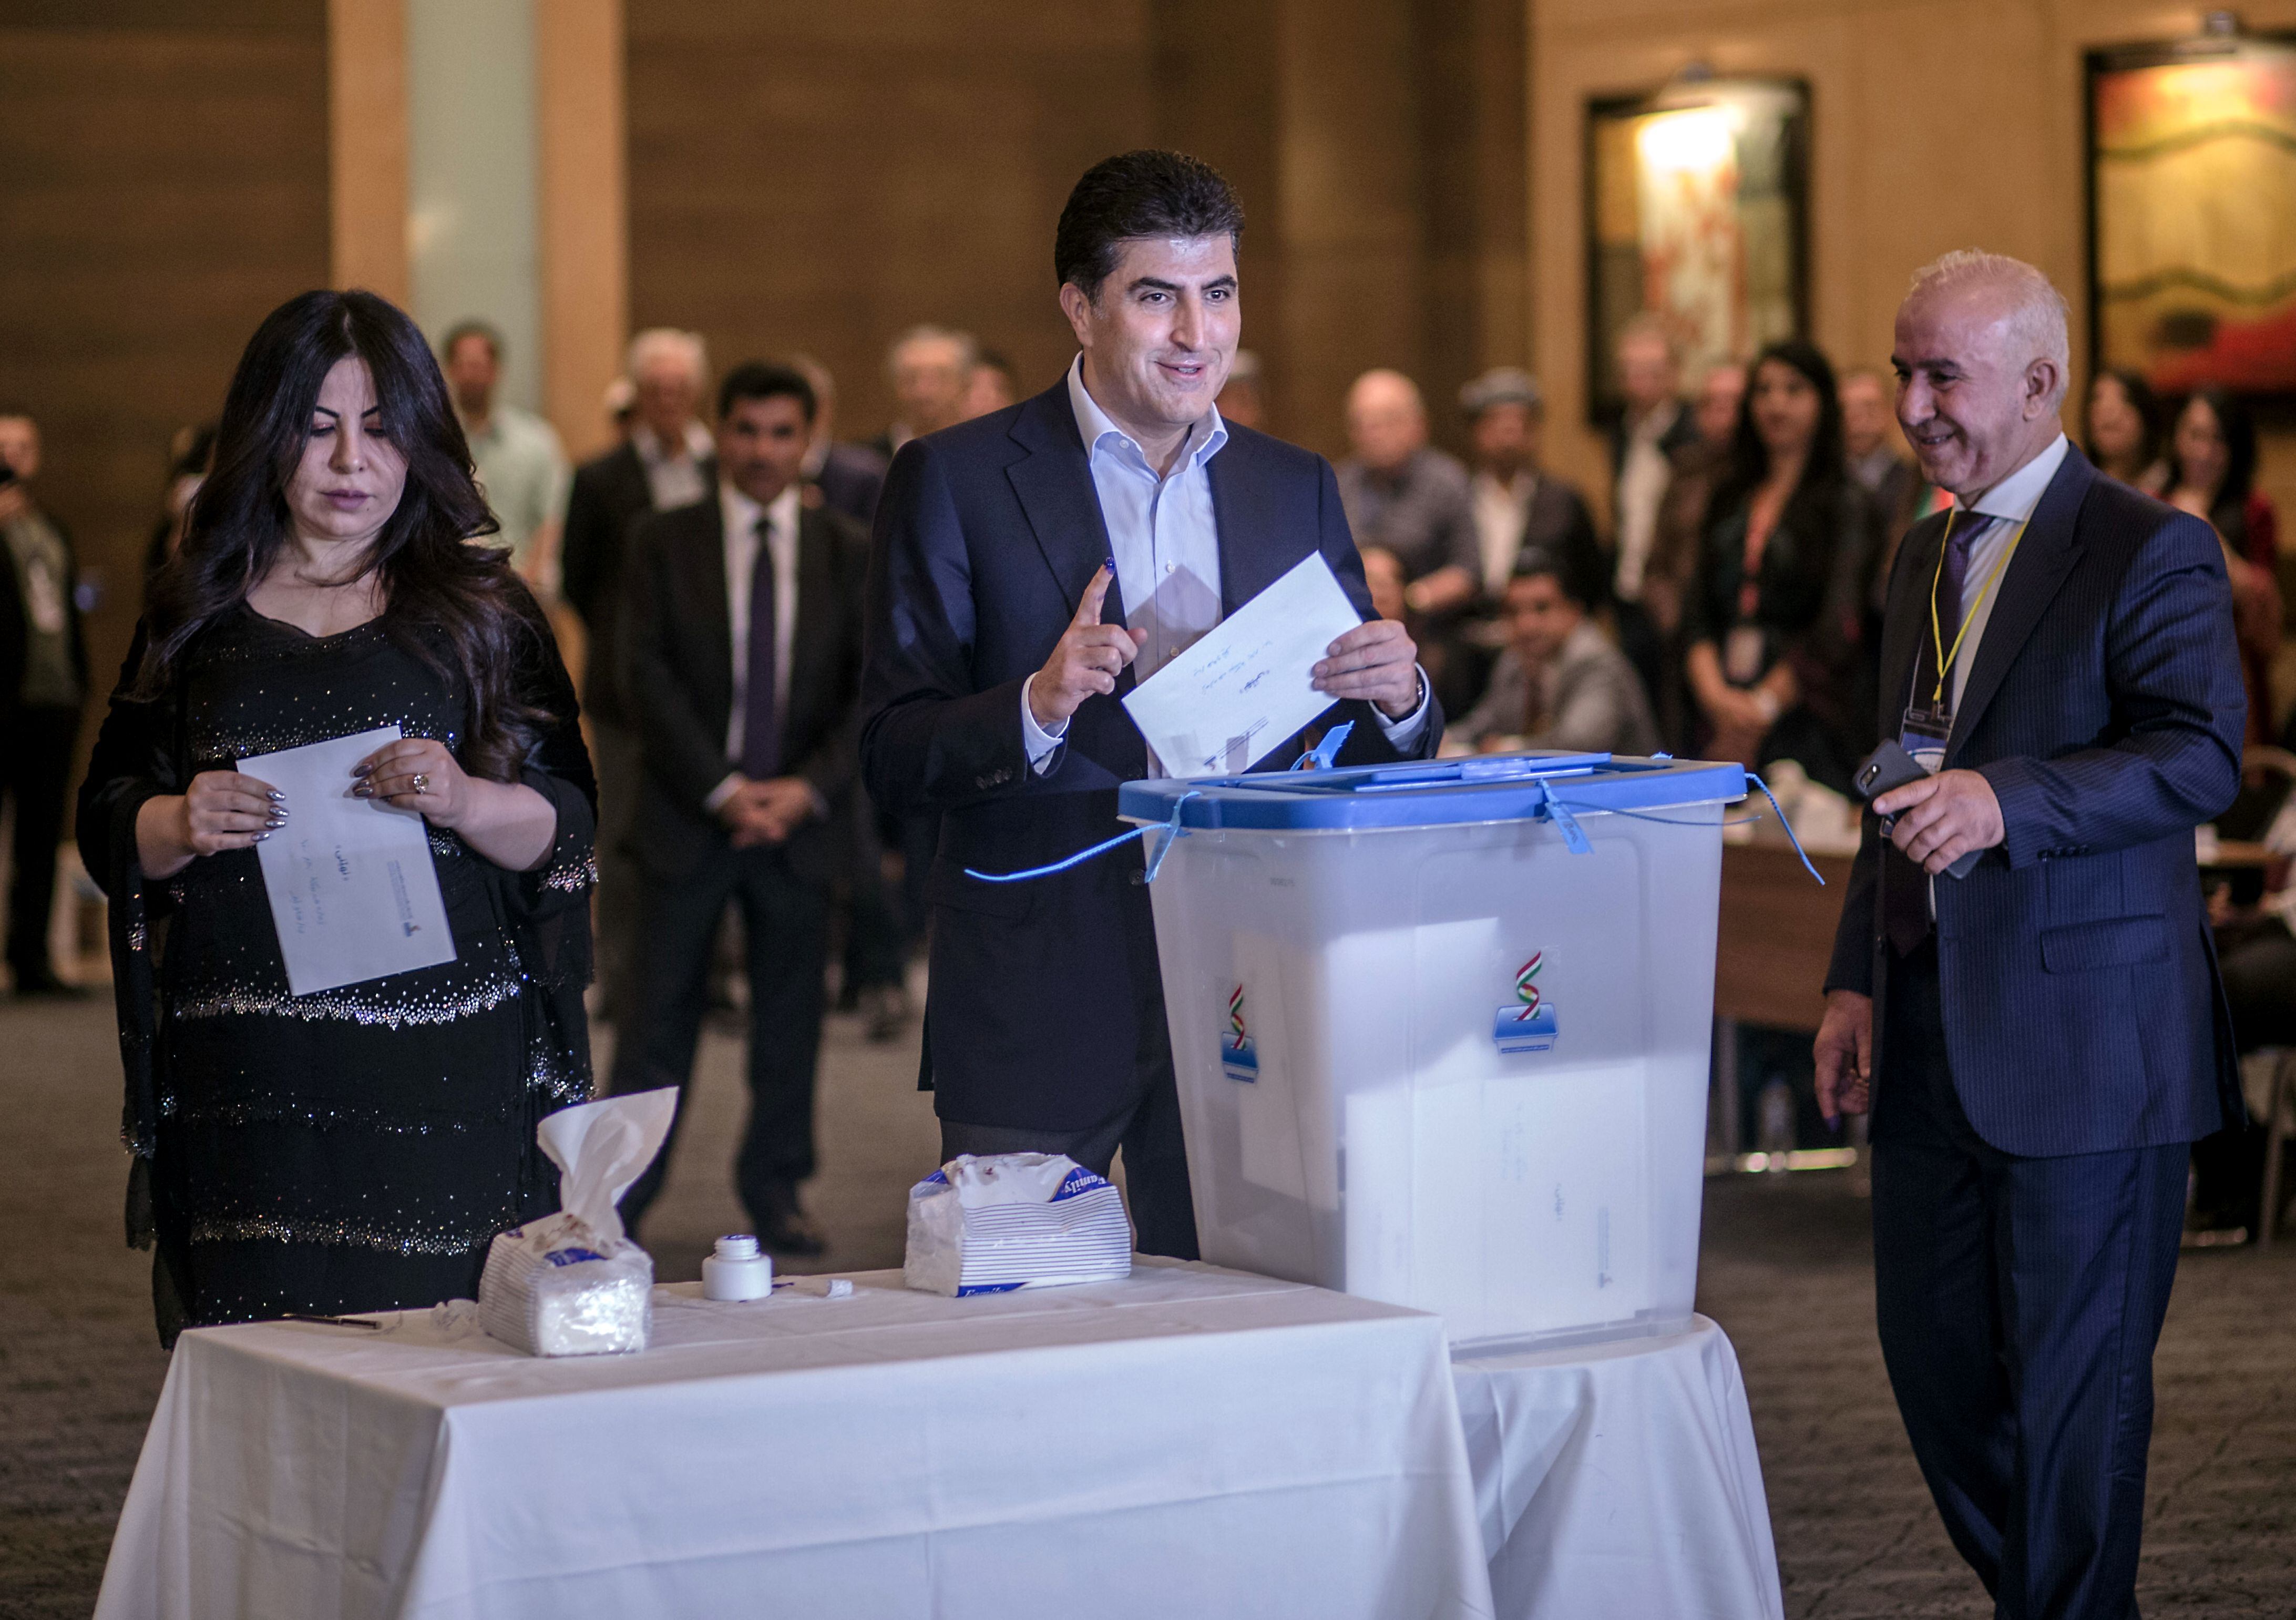 Prime Minister of the Kurdistan Regional Government (KRG) Nechirvan Barzani (C) and his wife Nabila (L), cast their vote for the Kurdish independence referendum at a hotel in Arbil on September 25, 2017. Iraqi Kurds voted in an independence referendum, defying warnings from Baghdad and their neighbours in a historic step towards a national dream. / AFP PHOTO / AHMED DEEBAHMED DEEB/AFP/Getty Images